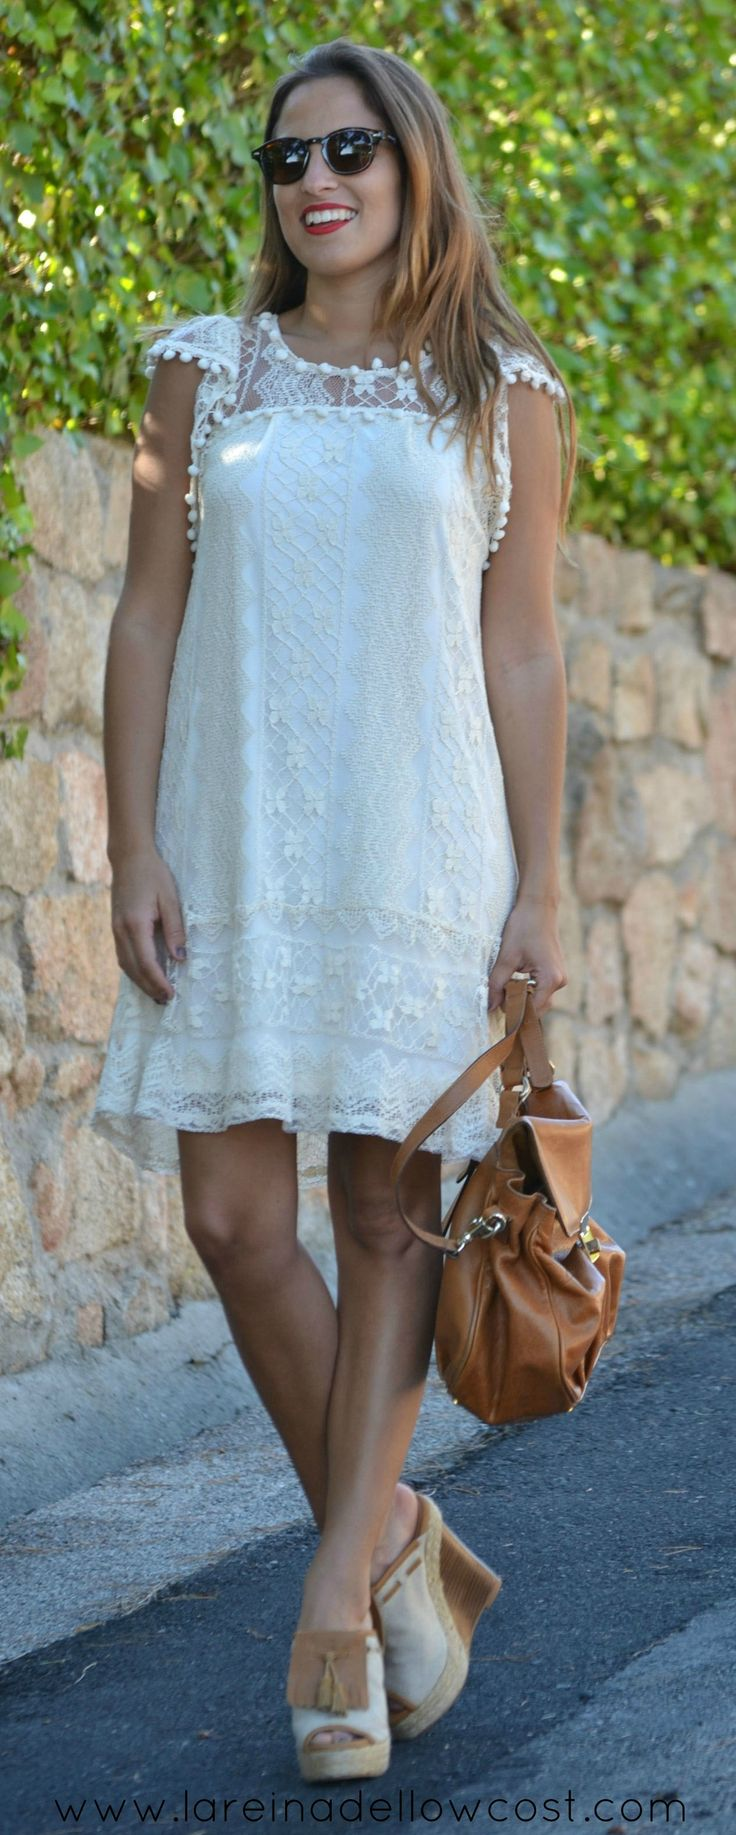 Summer total look. White dress. Sunglasses. Lace dress. Spanish Blogger. La Reina del Low Cost Fashion Blogger Style Outfit